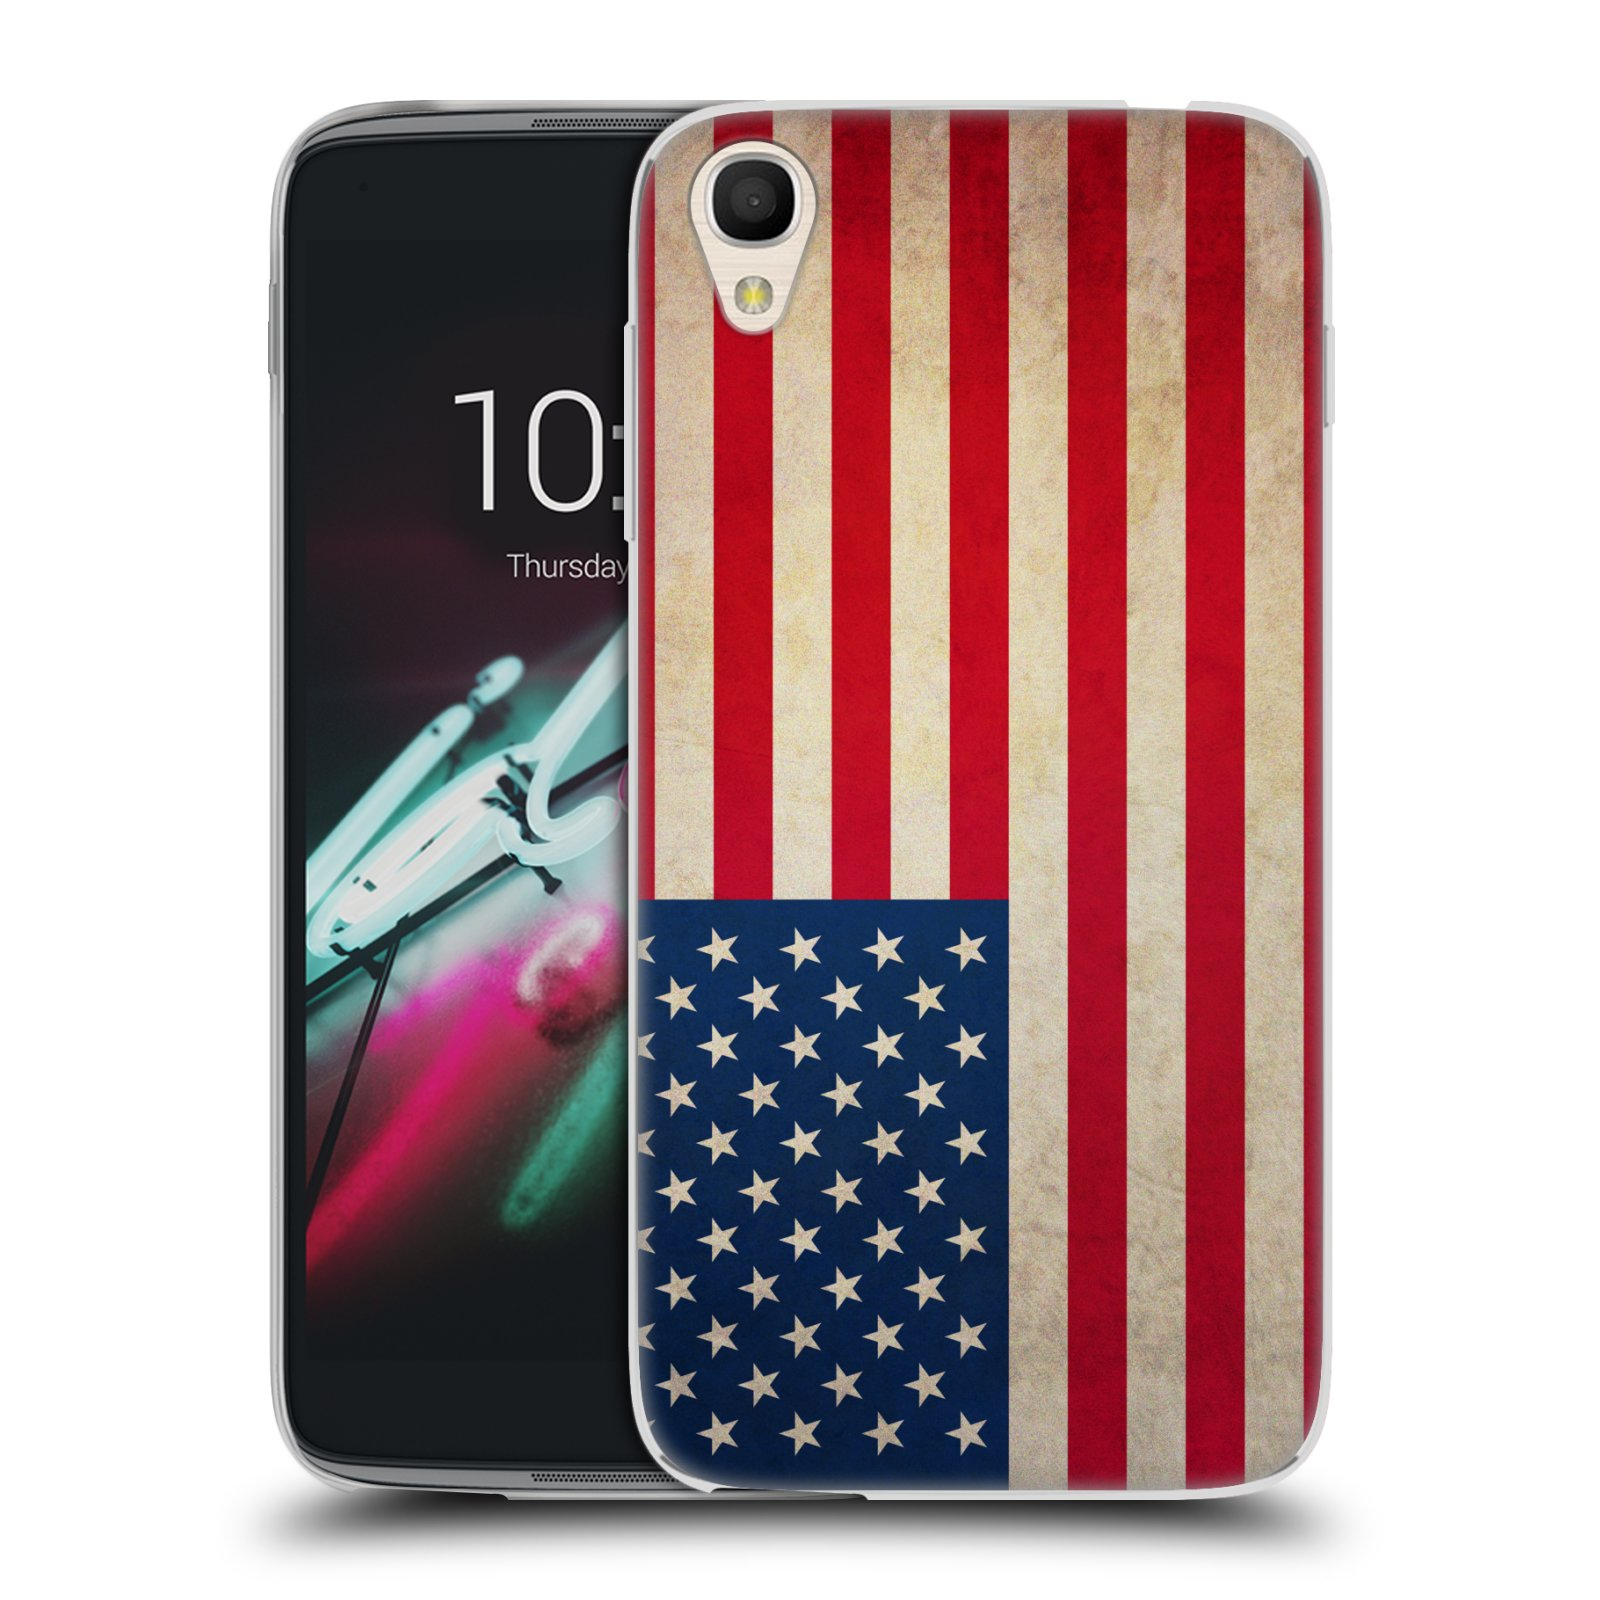 Silikonové pouzdro na mobil Alcatel One Touch 6039Y Idol 3 HEAD CASE VLAJKA USA